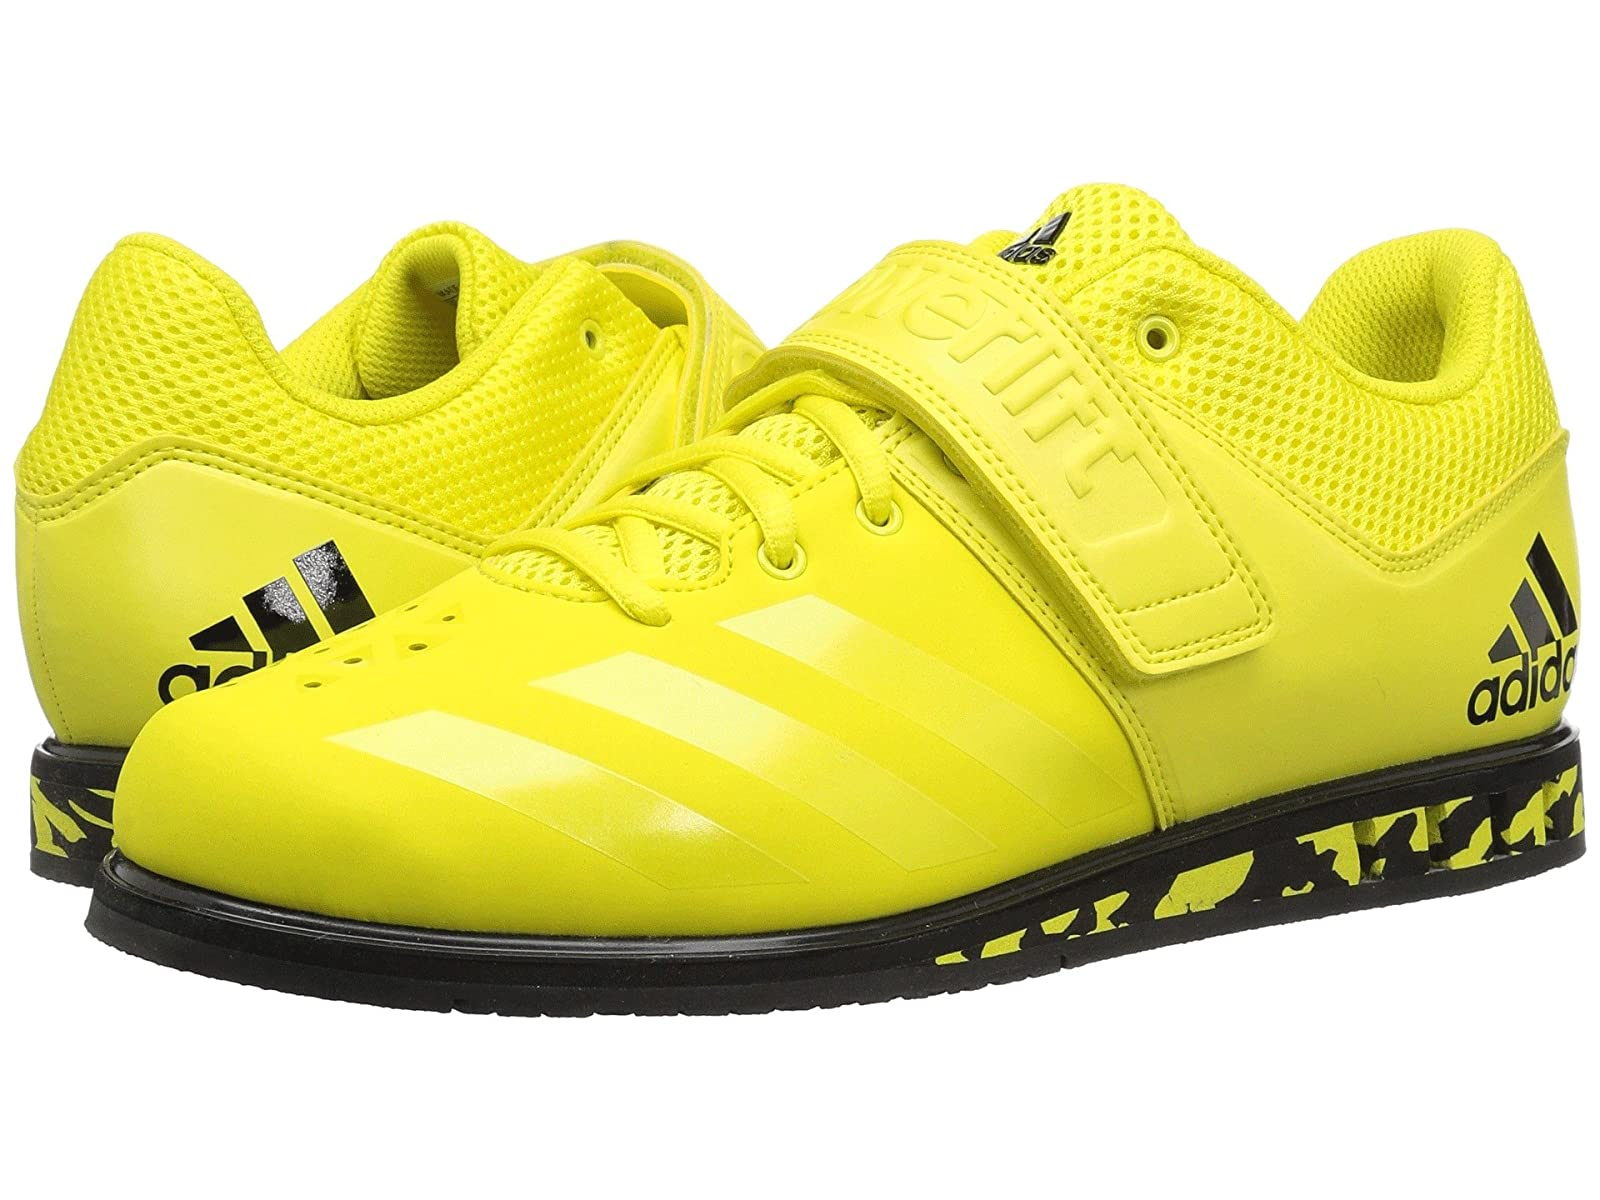 adidas Powerlift 3.1Atmospheric grades have affordable shoes